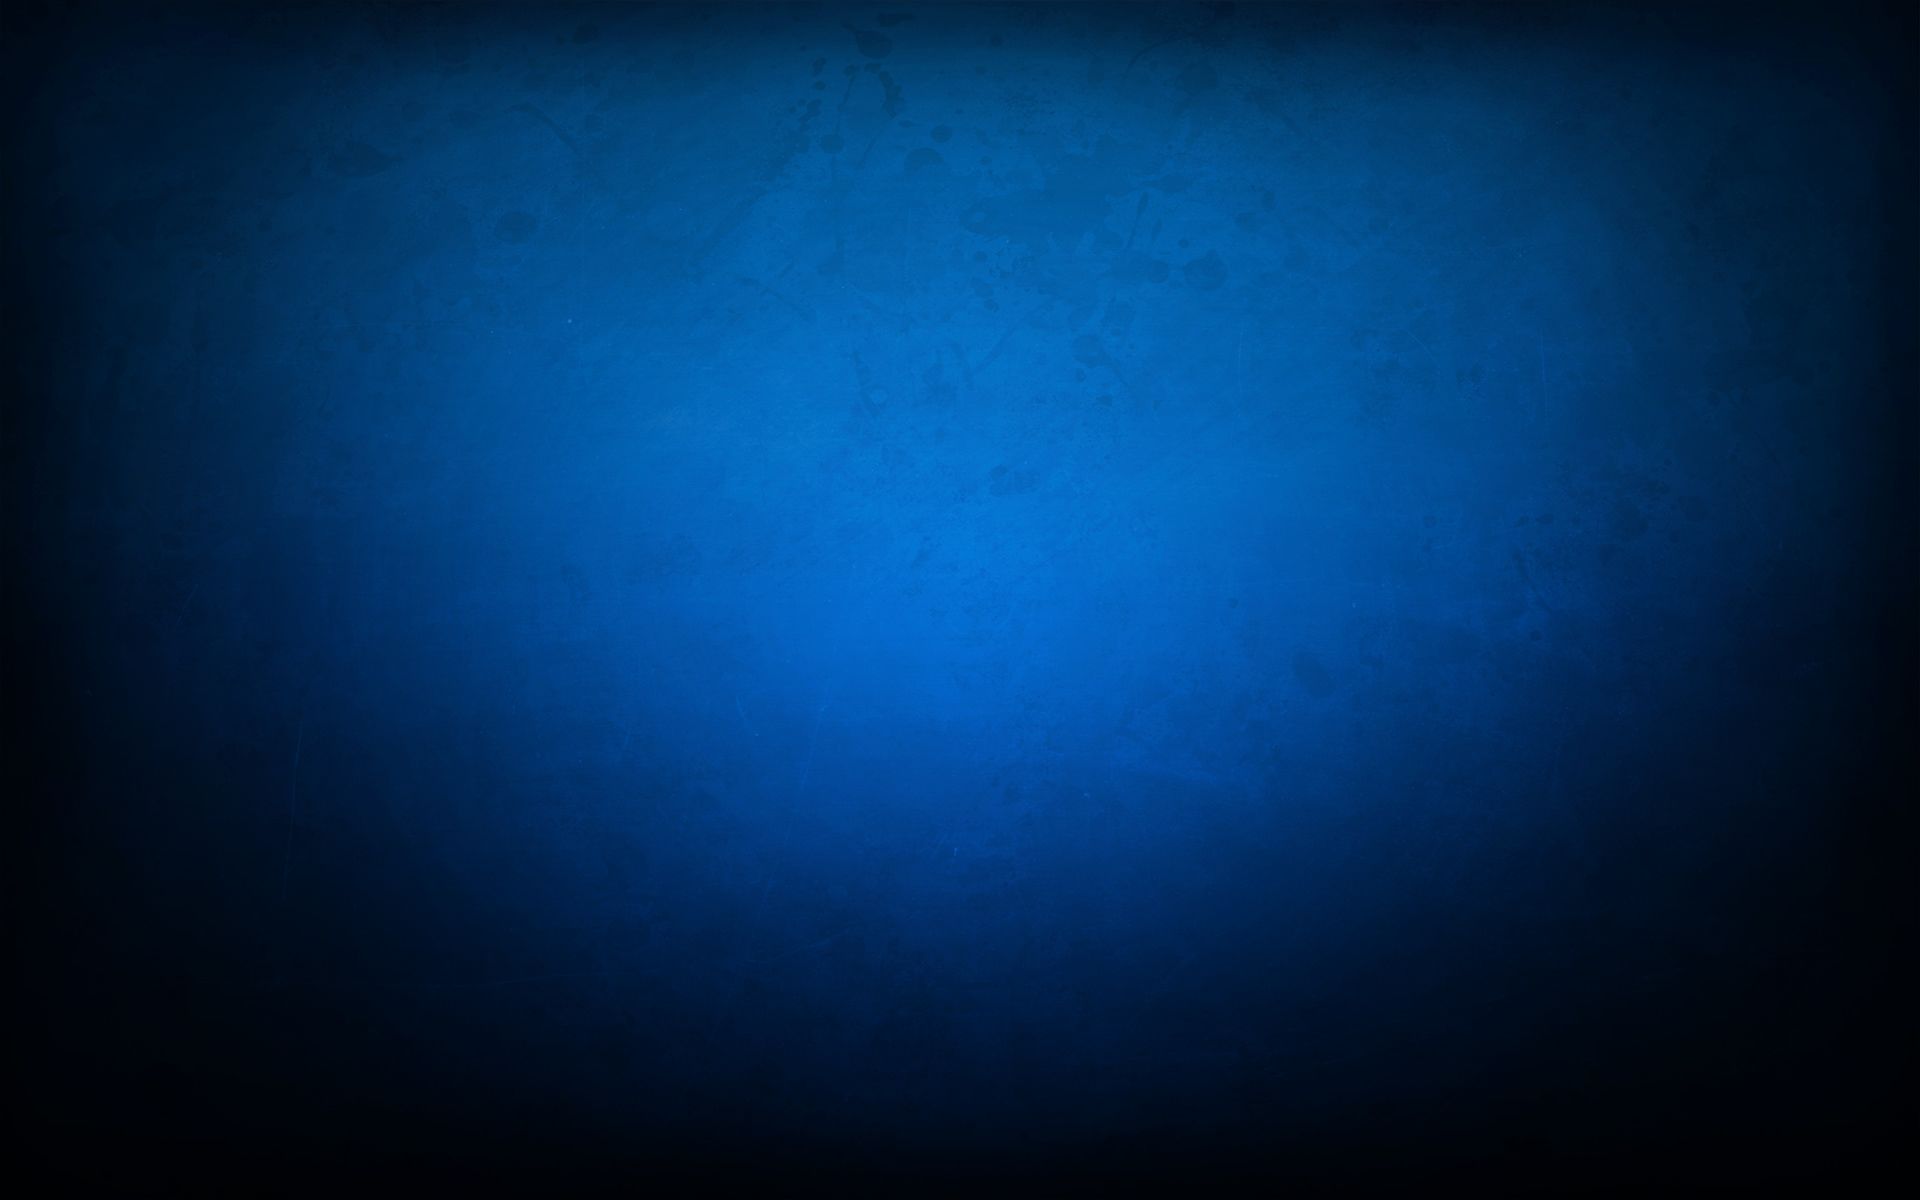 Black And Blue Hd Wallpaper 5 Background   Hdblackwallpapercom 1920x1200